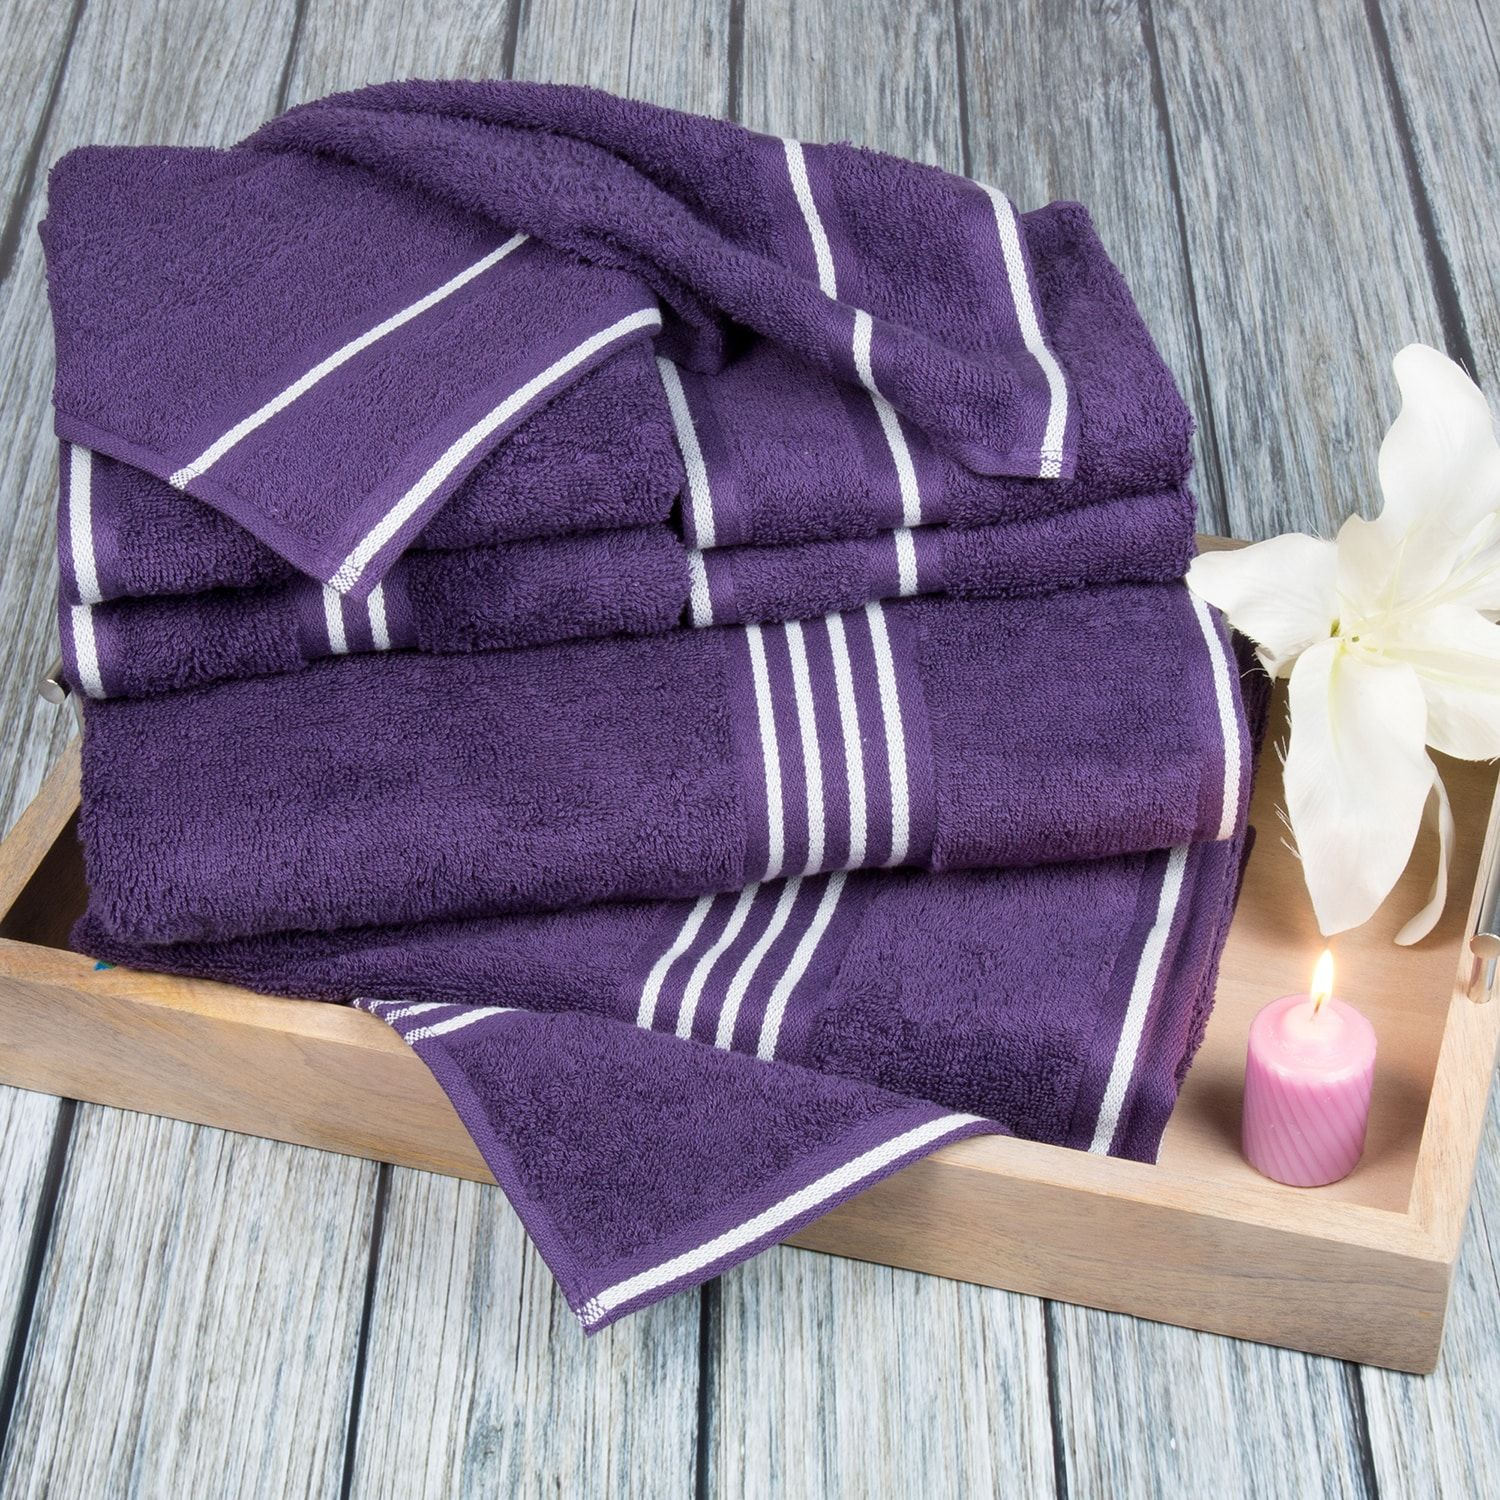 Rio Purple Bath Towel Set Of 8 Purple Bath Towels Egyptian